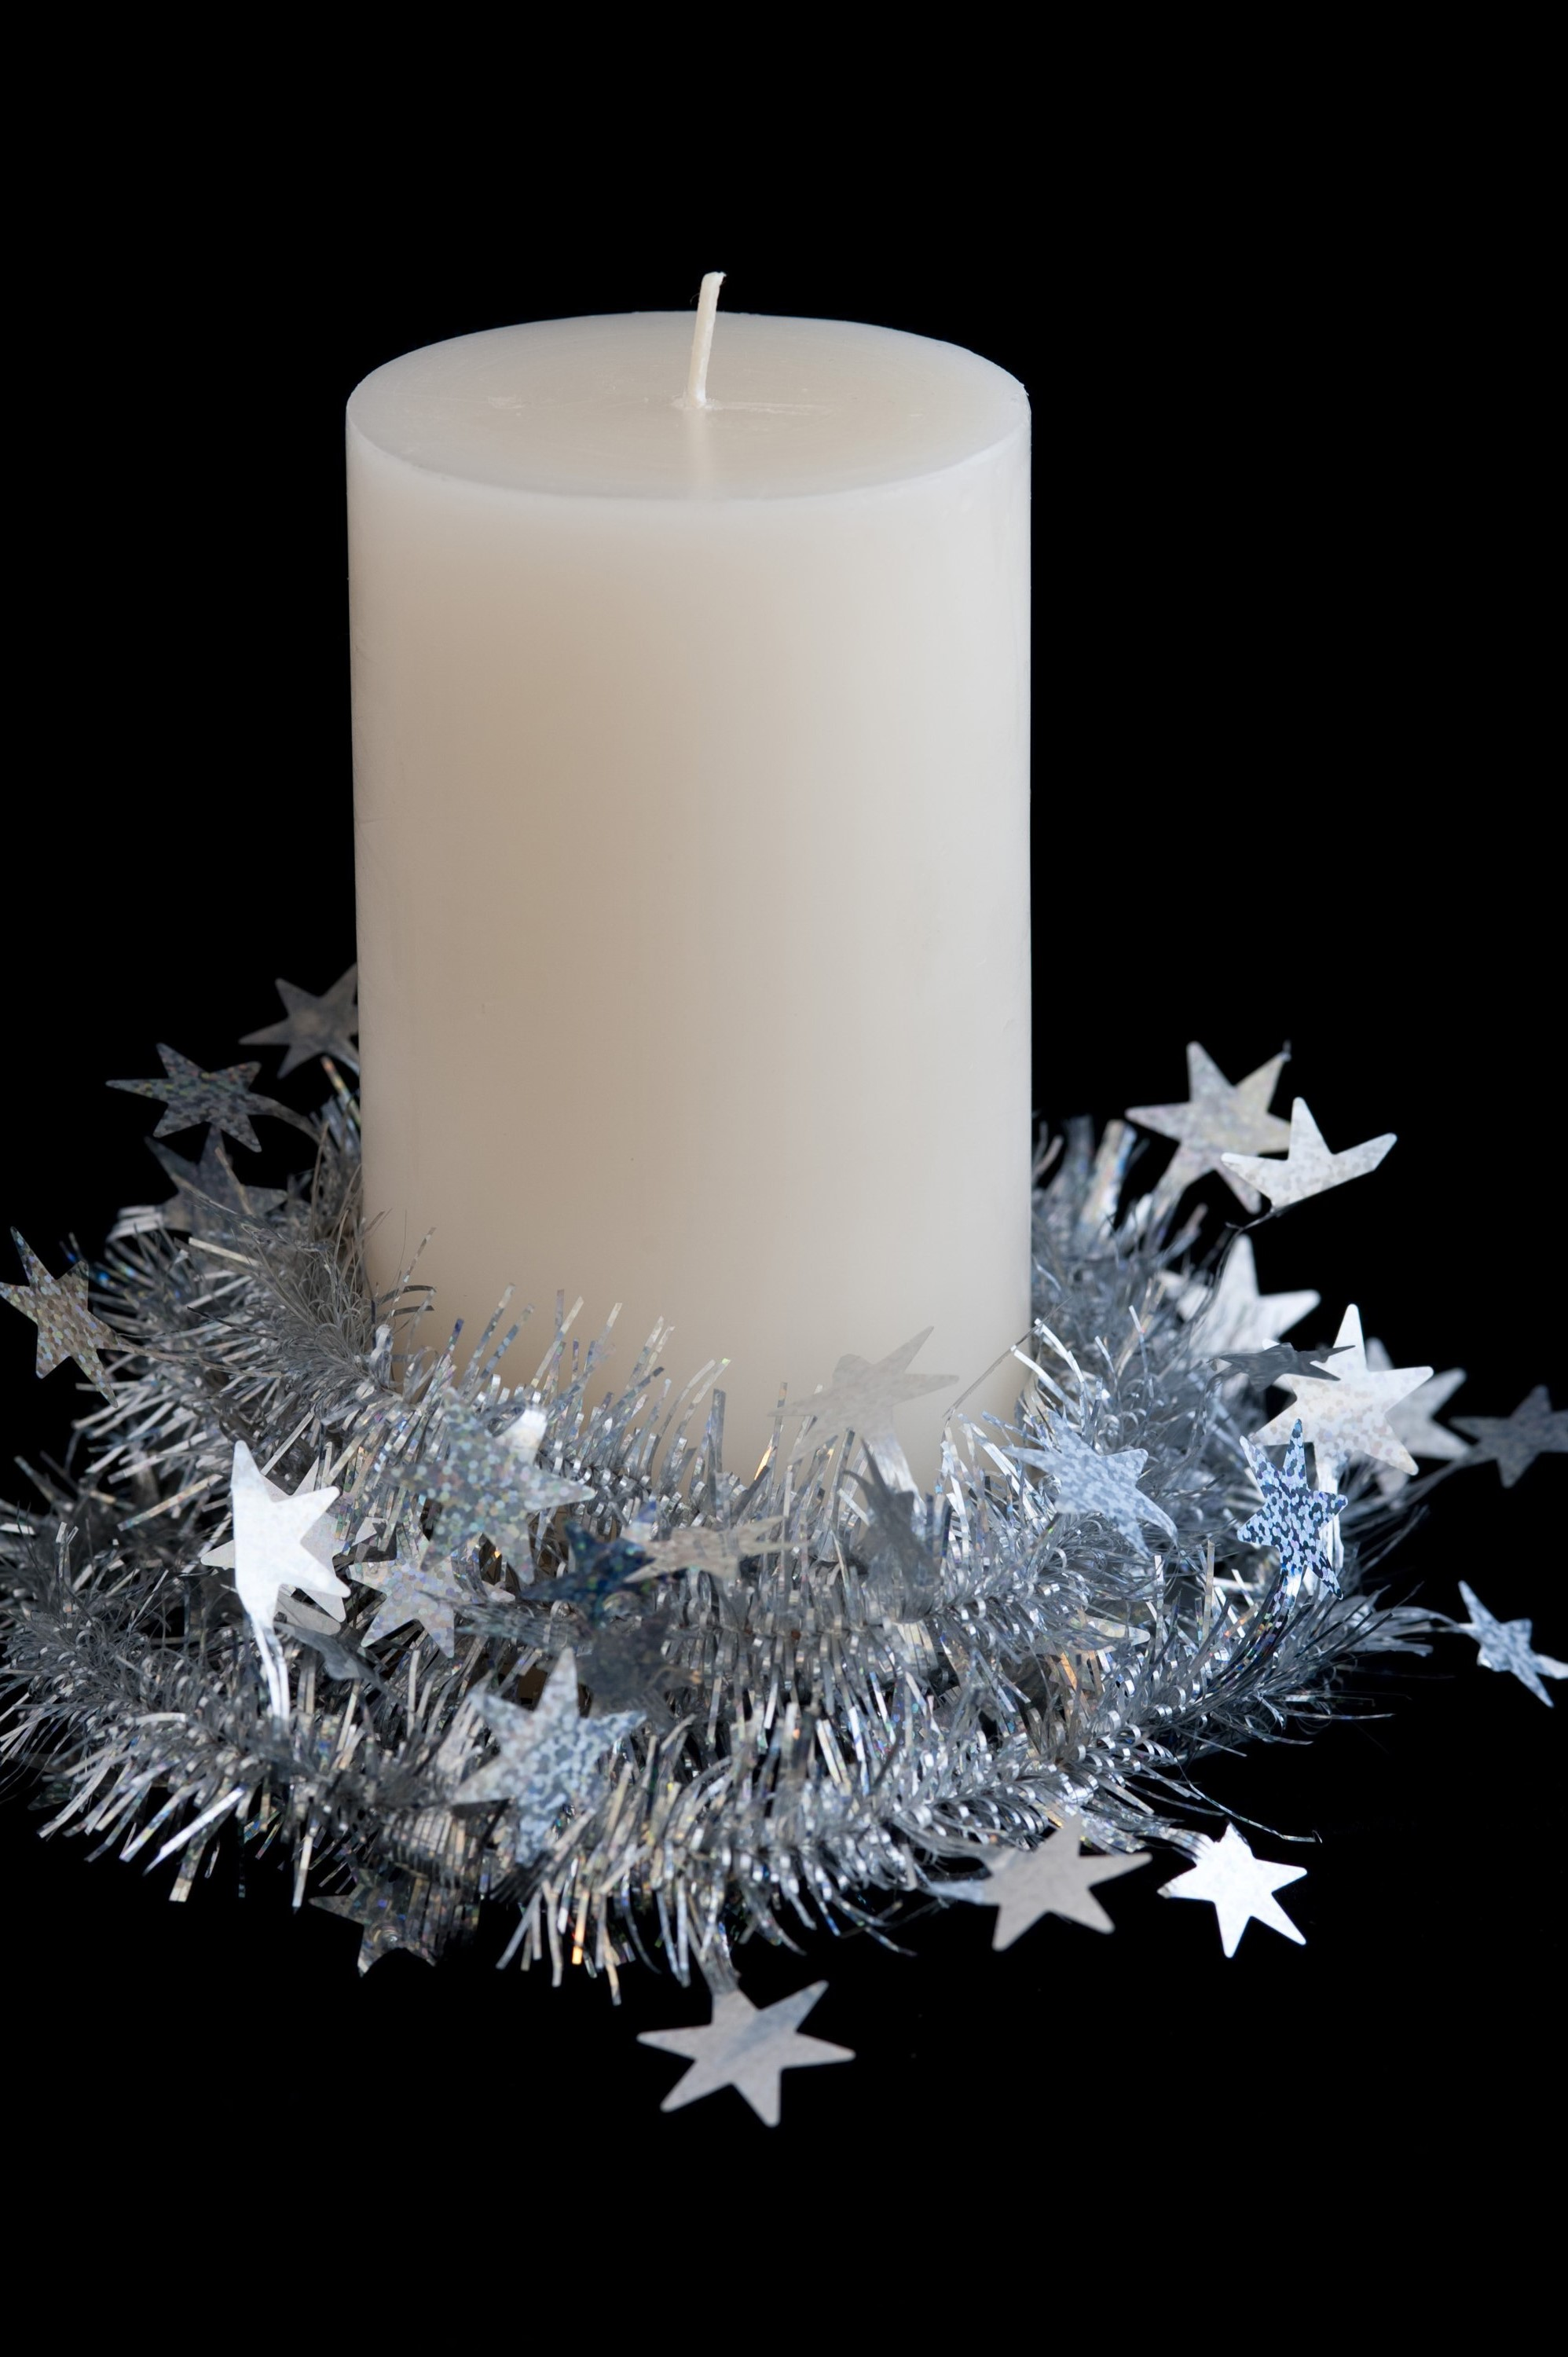 a new christmas candle wrapped in tinsel on a black background